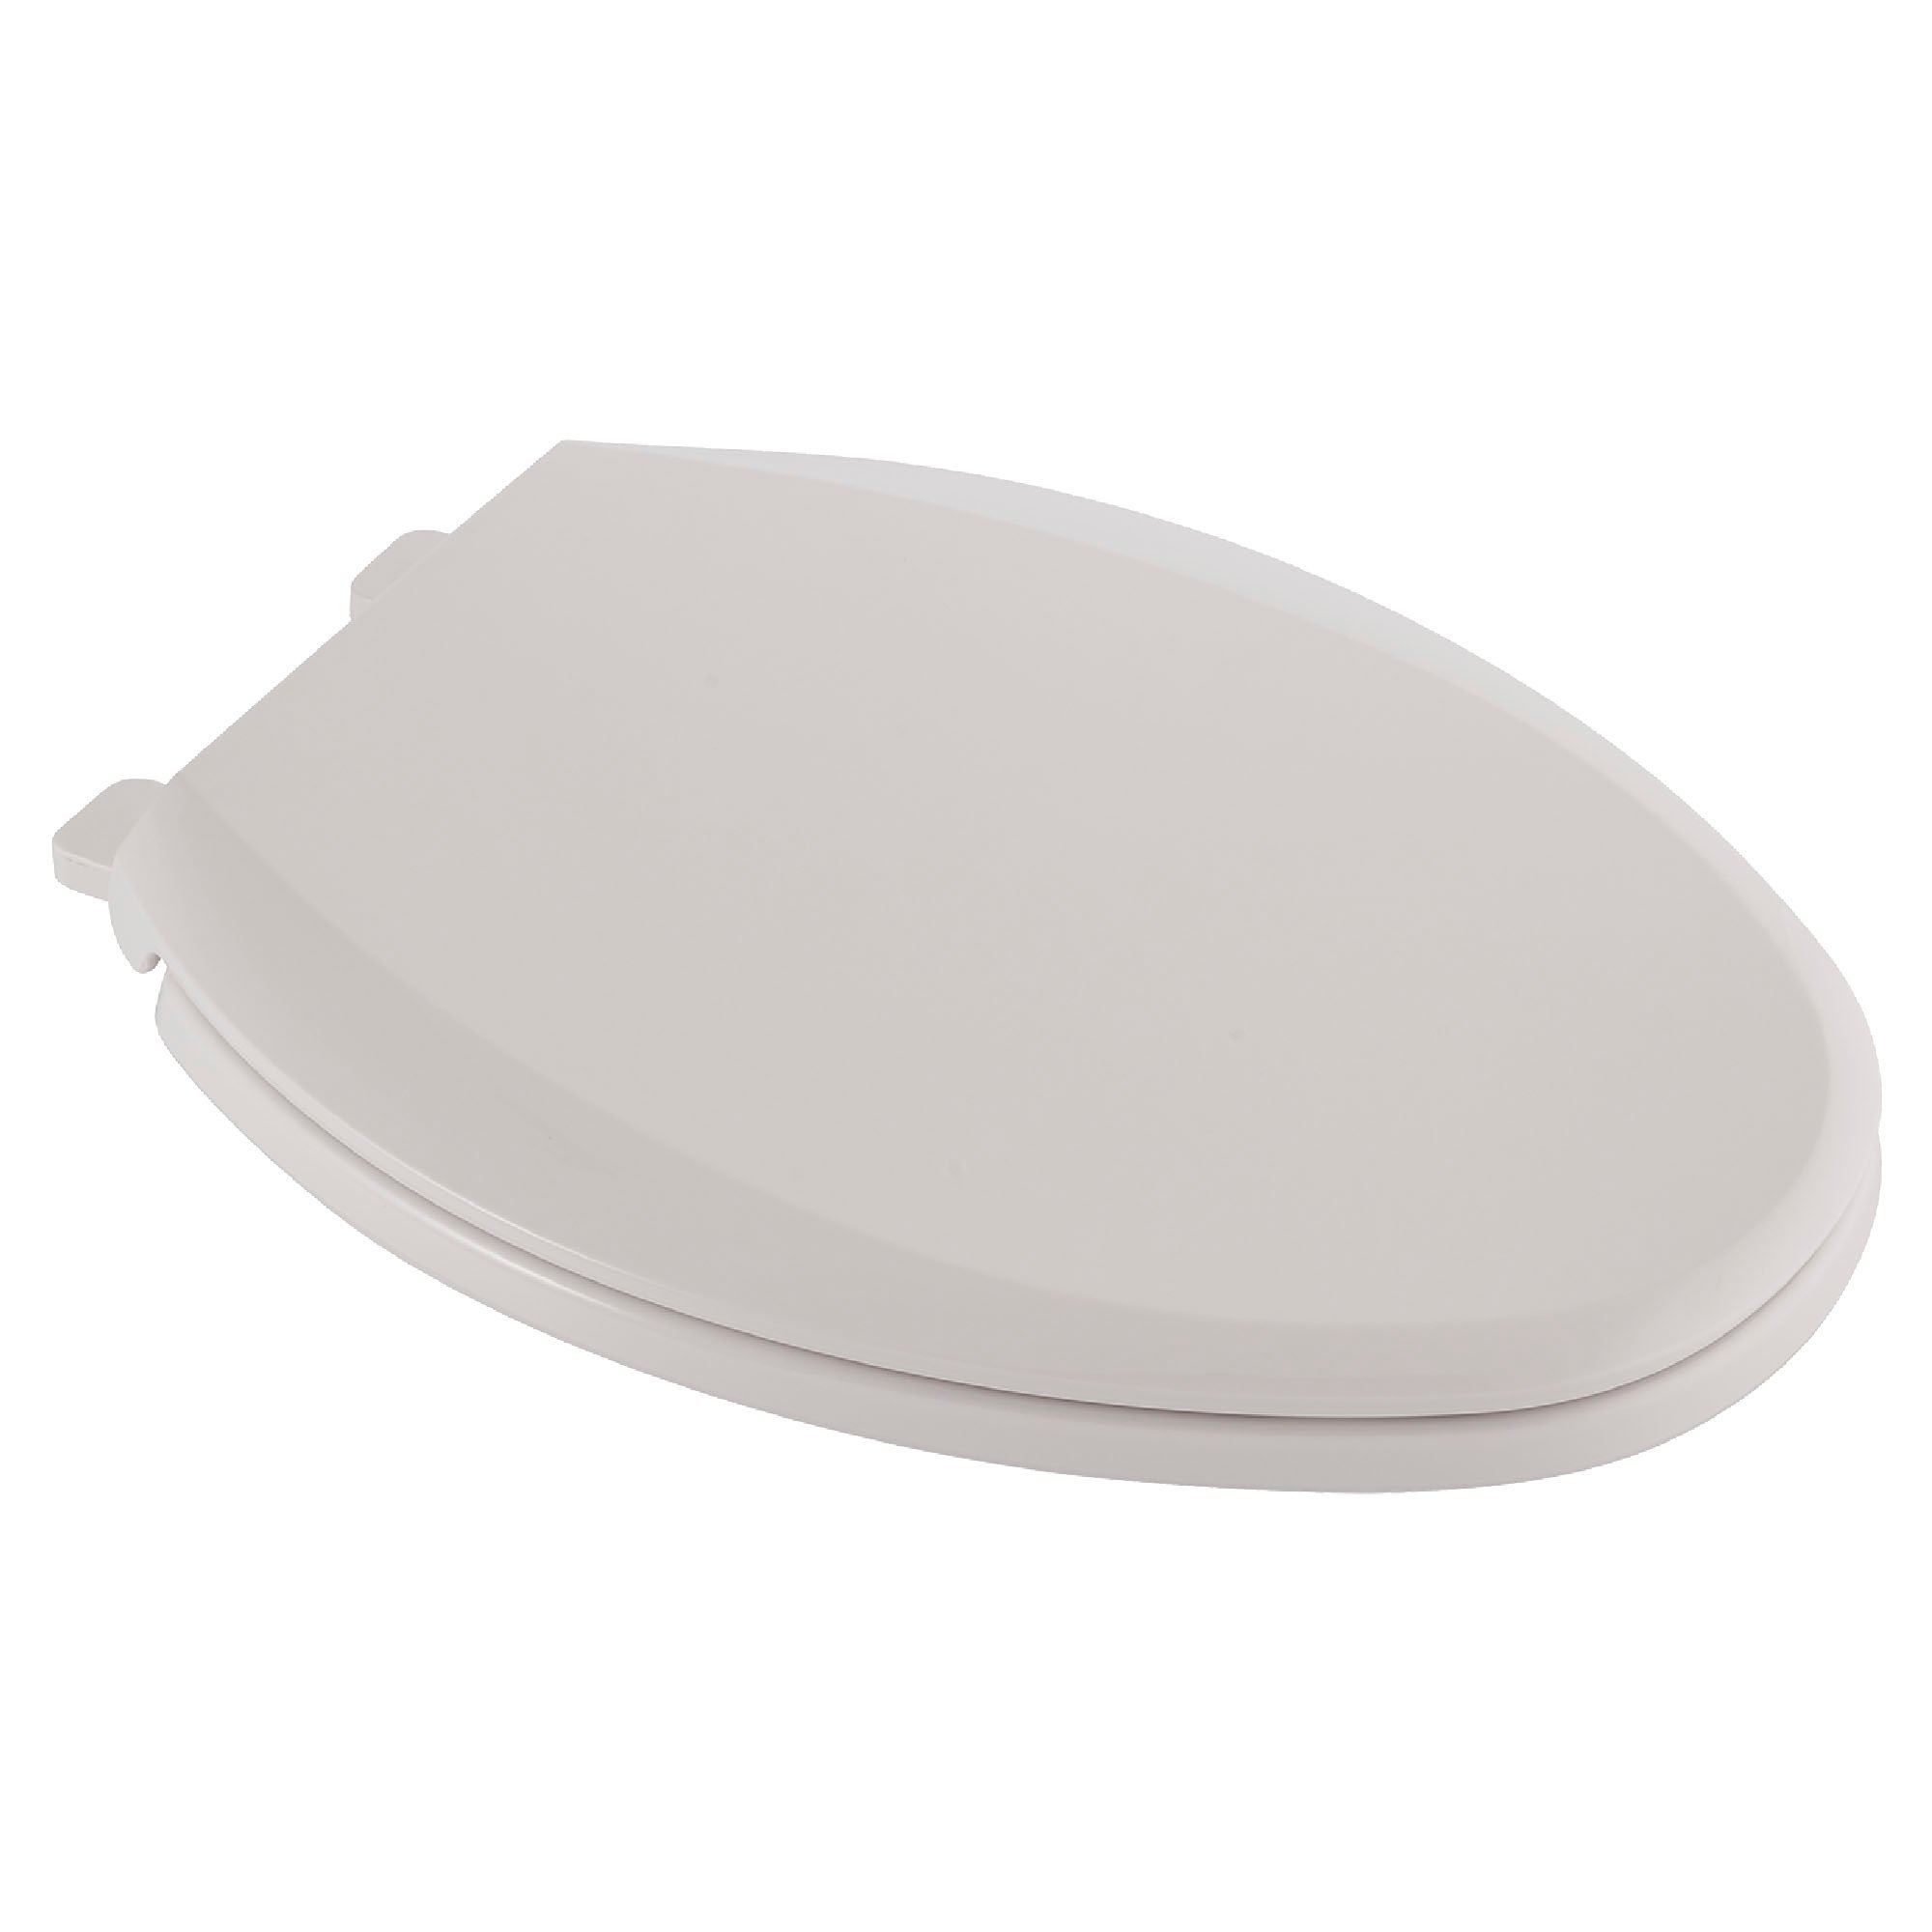 American Standard 5257A65C.021 Slow Close Easy Lift and Clean Elongated Toilet Seat, Bone